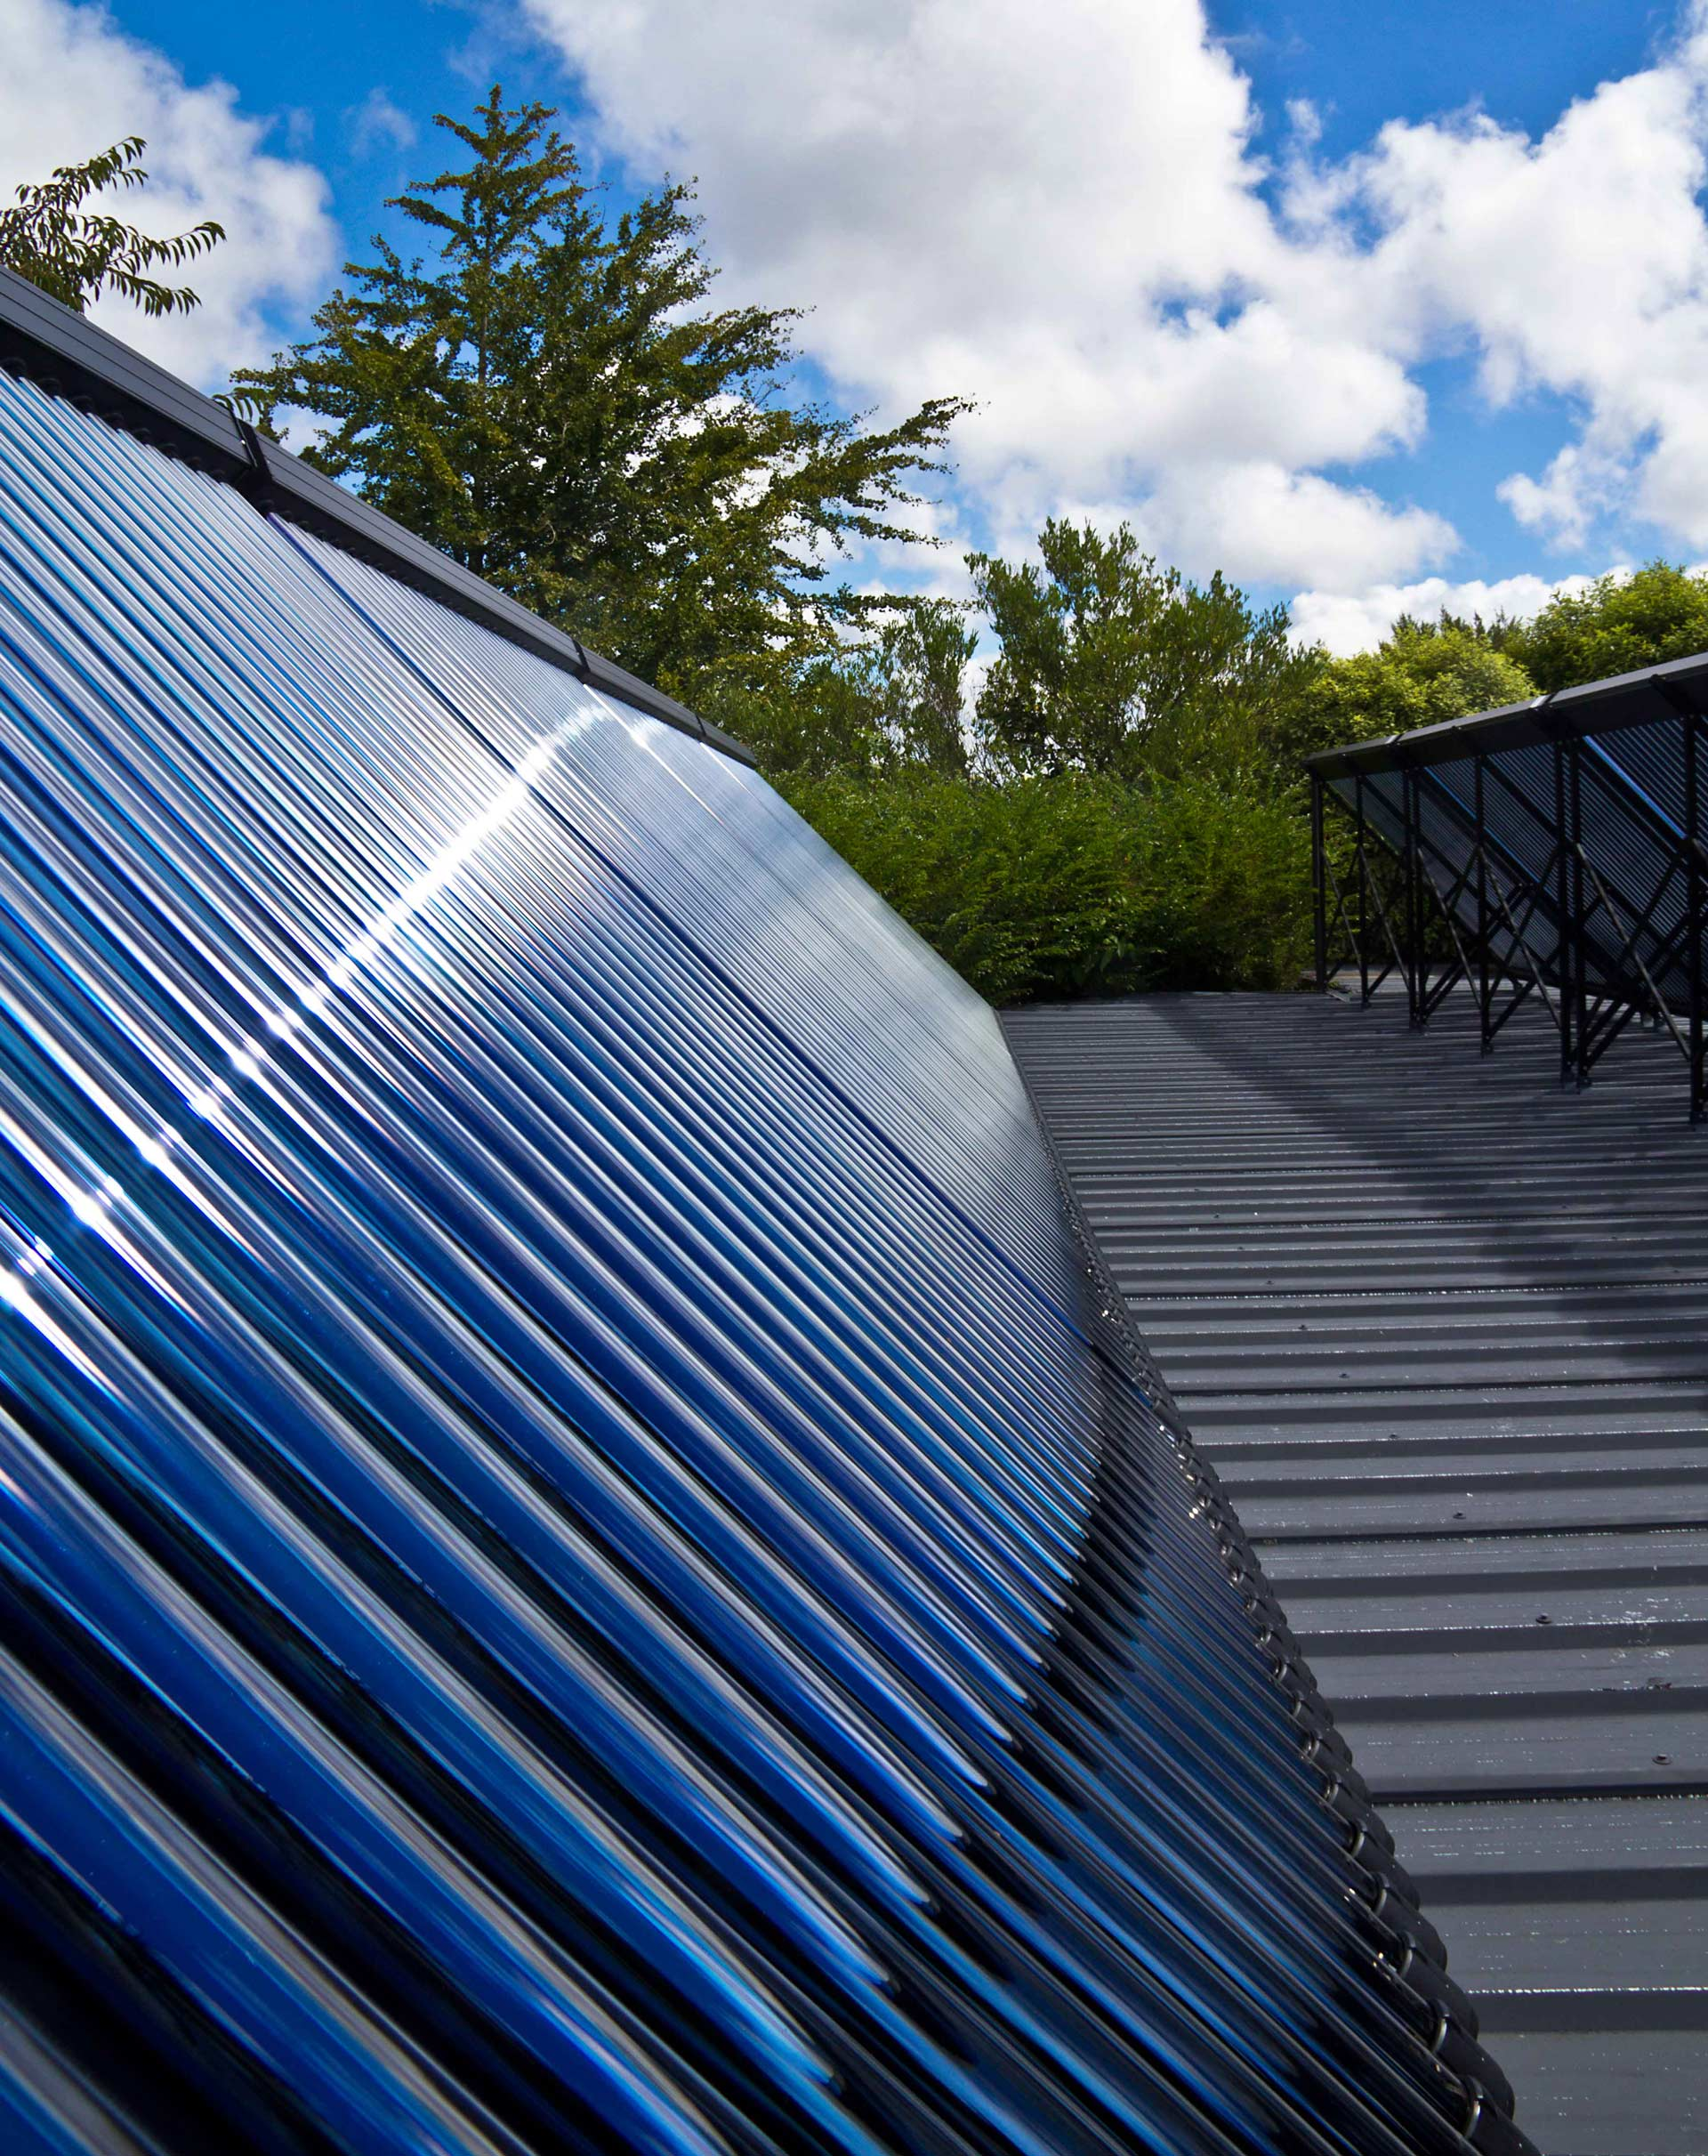 large solar thermal system on roof